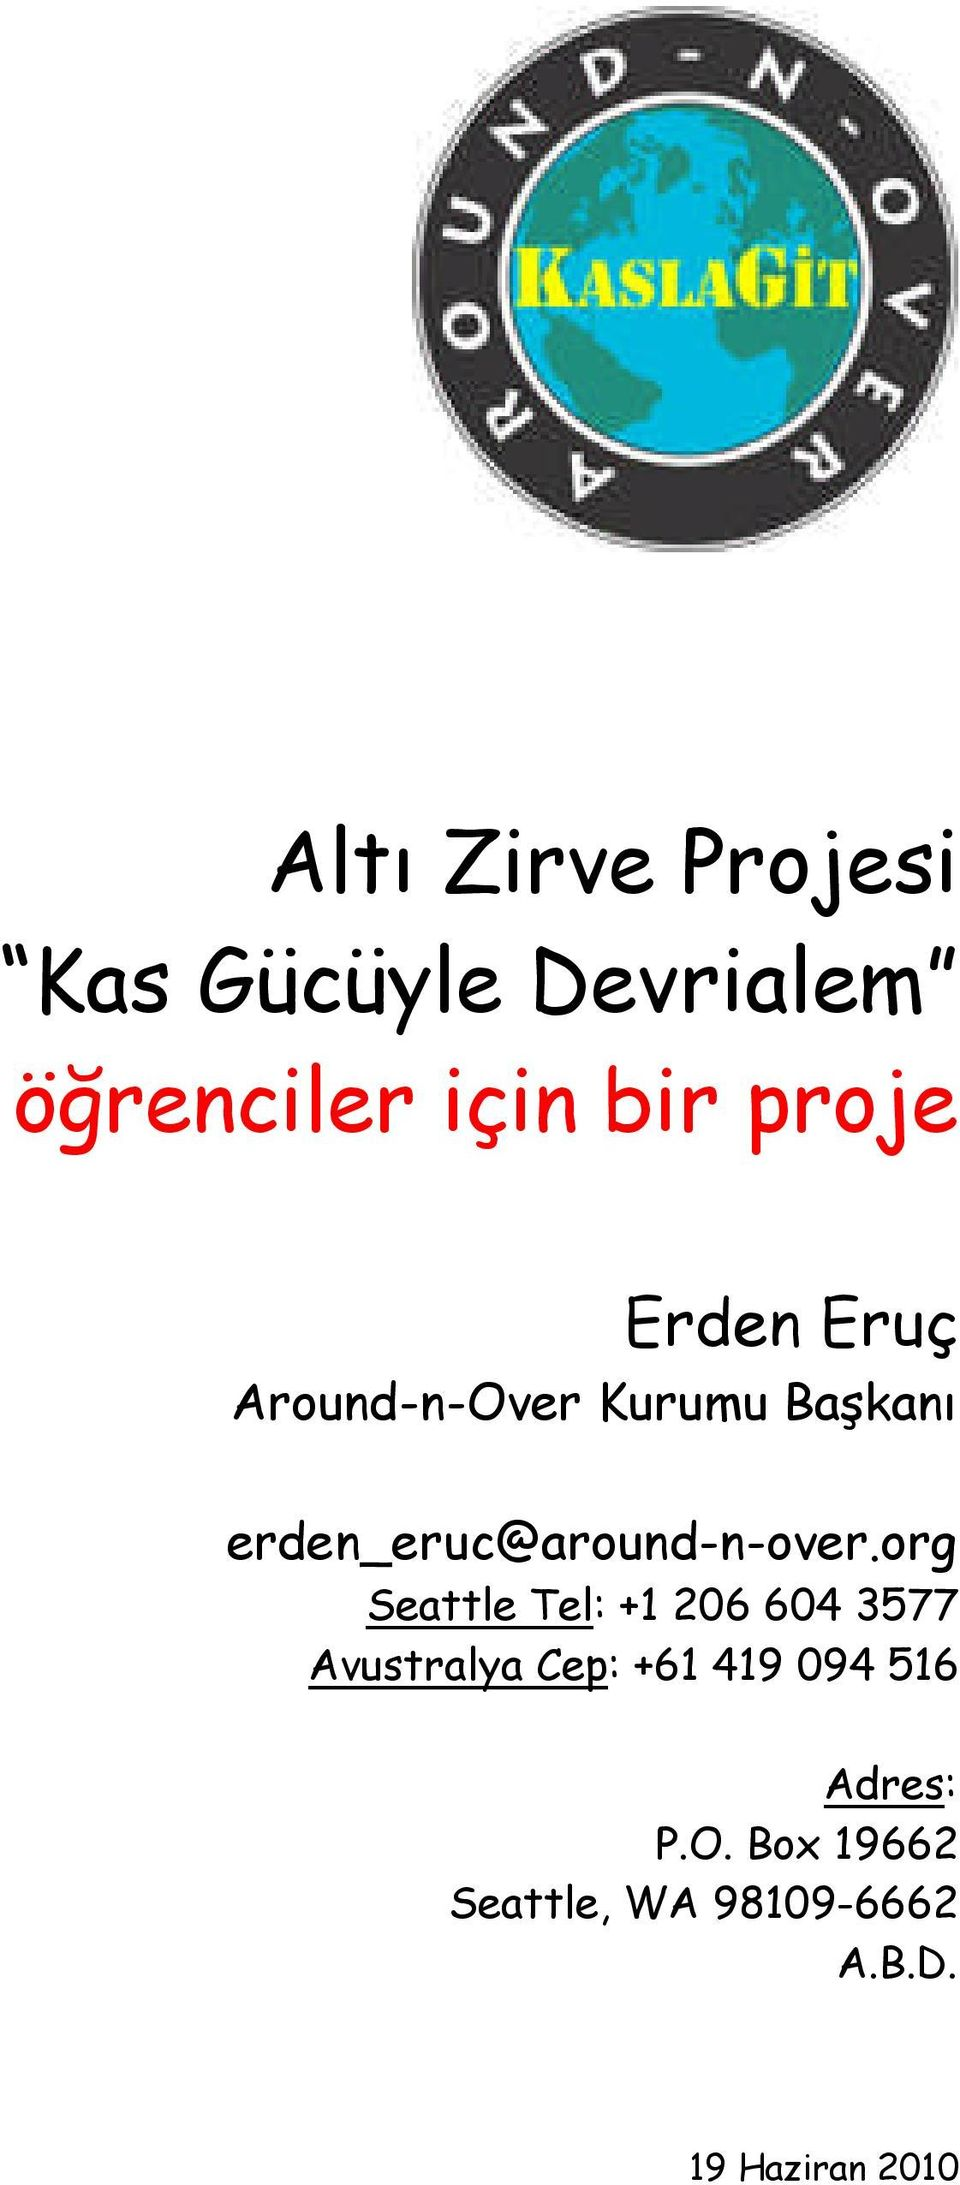 erden_eruc@around-n-over.